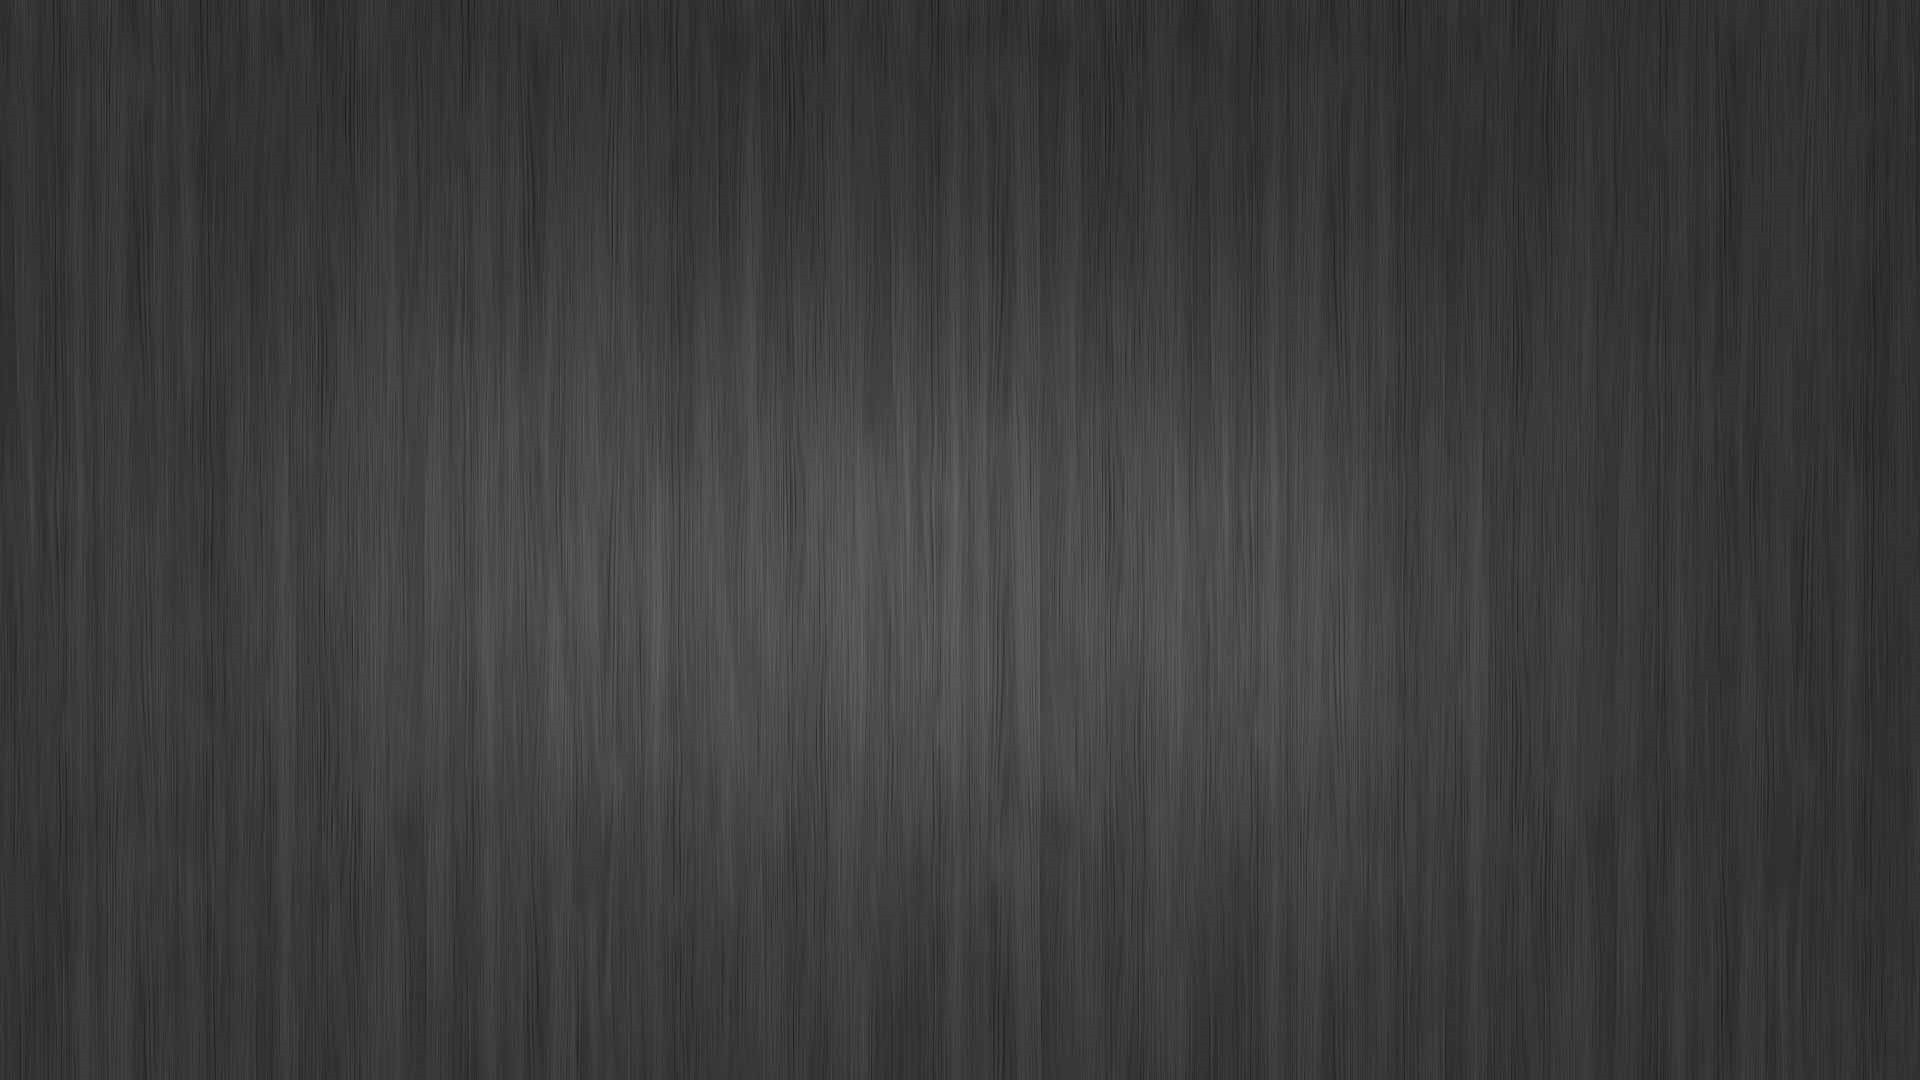 Dark Gray Desktop Wallpaper